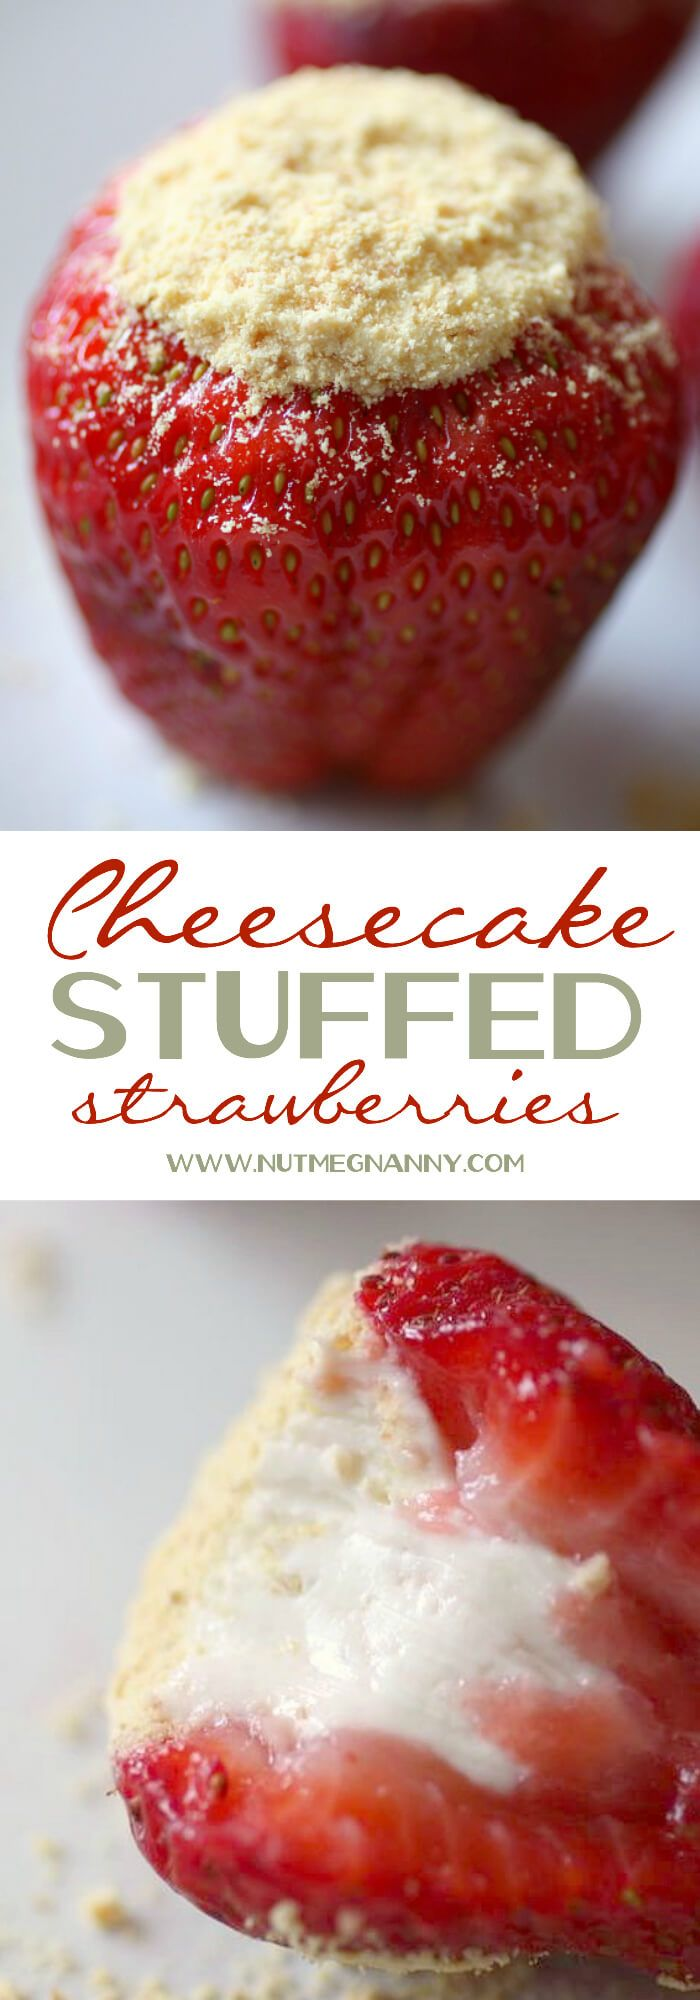 These Cheesecake Stuffed Strawberries are the perfect Valentine's Day dessert. Filled with creamy cheesecake filling and topped with a sprinkling of graham cracker crumbs.